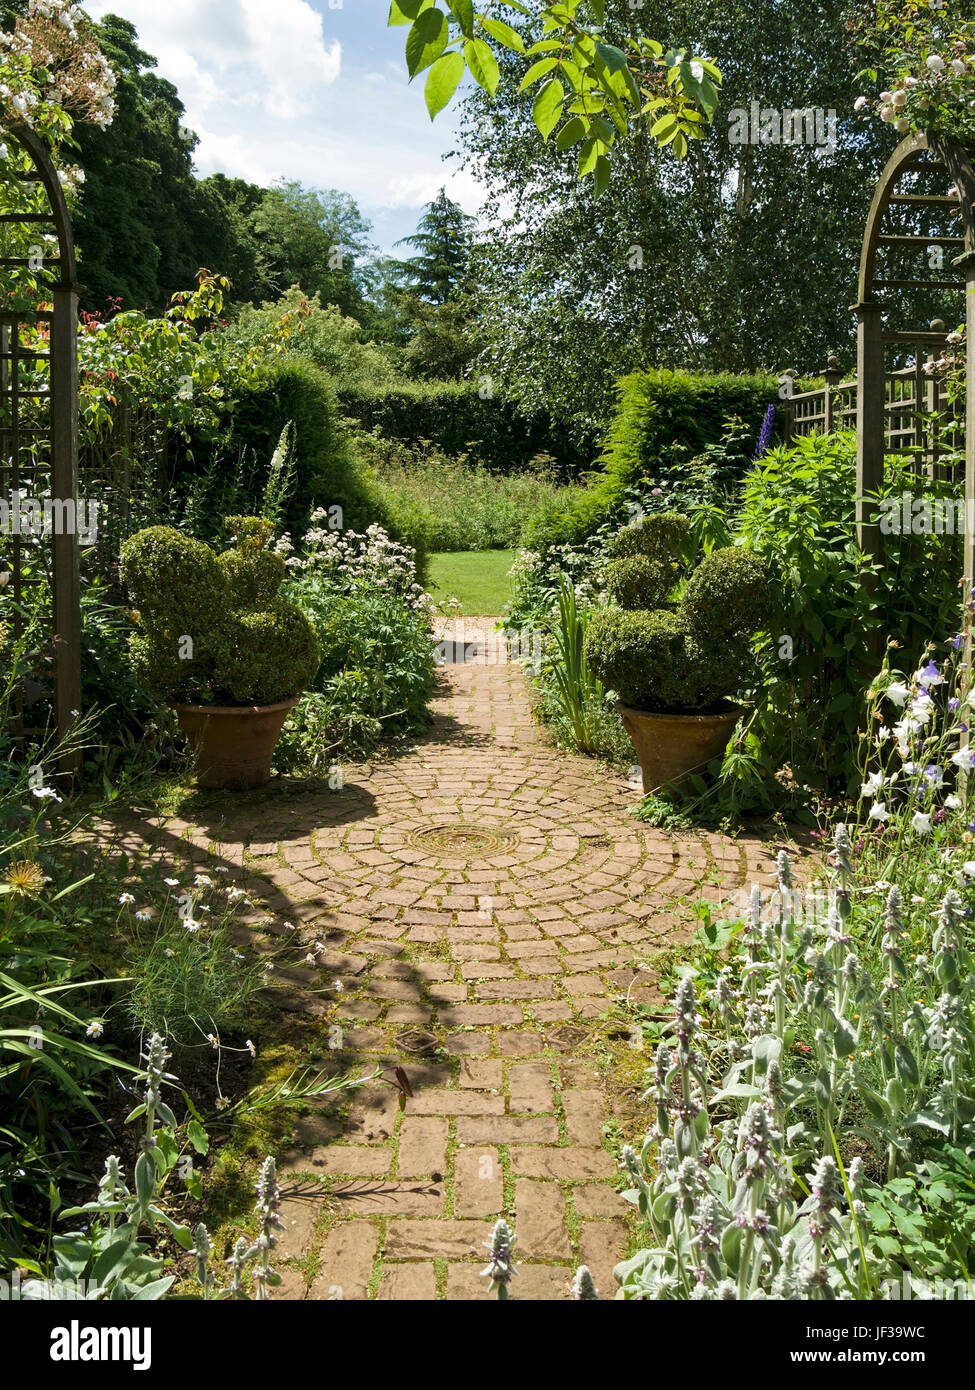 Ornate, decorative block paver path with circular pattern in garden, Barnsdale Gardens, Oakham, Rutland, UK - Stock Image